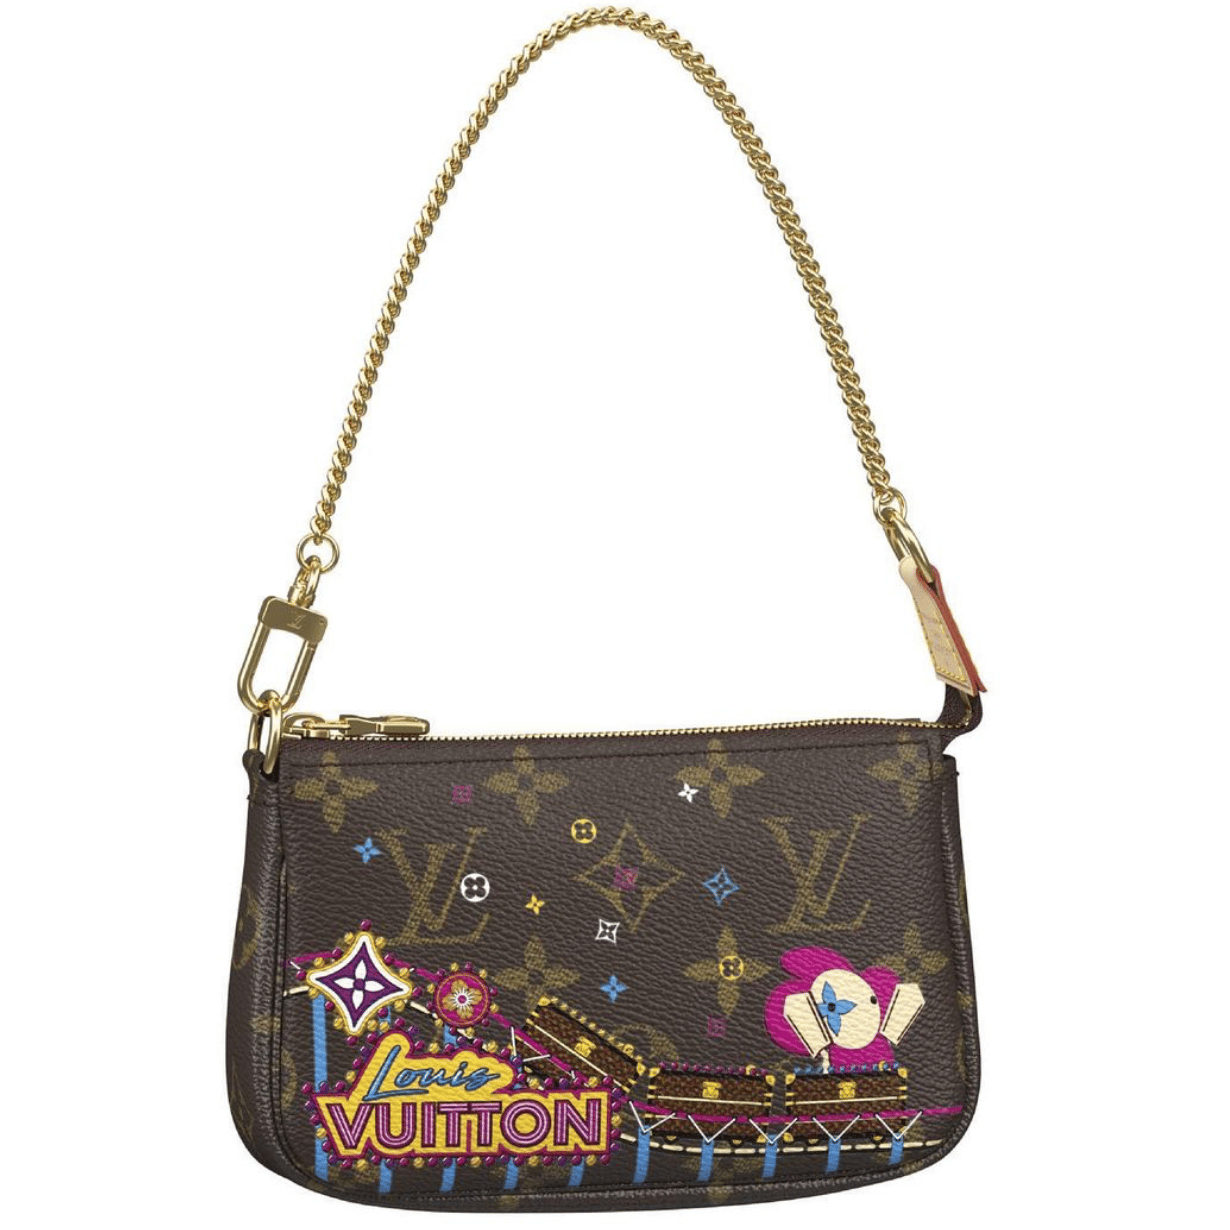 Coaster Christmas 2020 Louis Vuitton Christmas Animation 2020 Bag Collection | Spotted